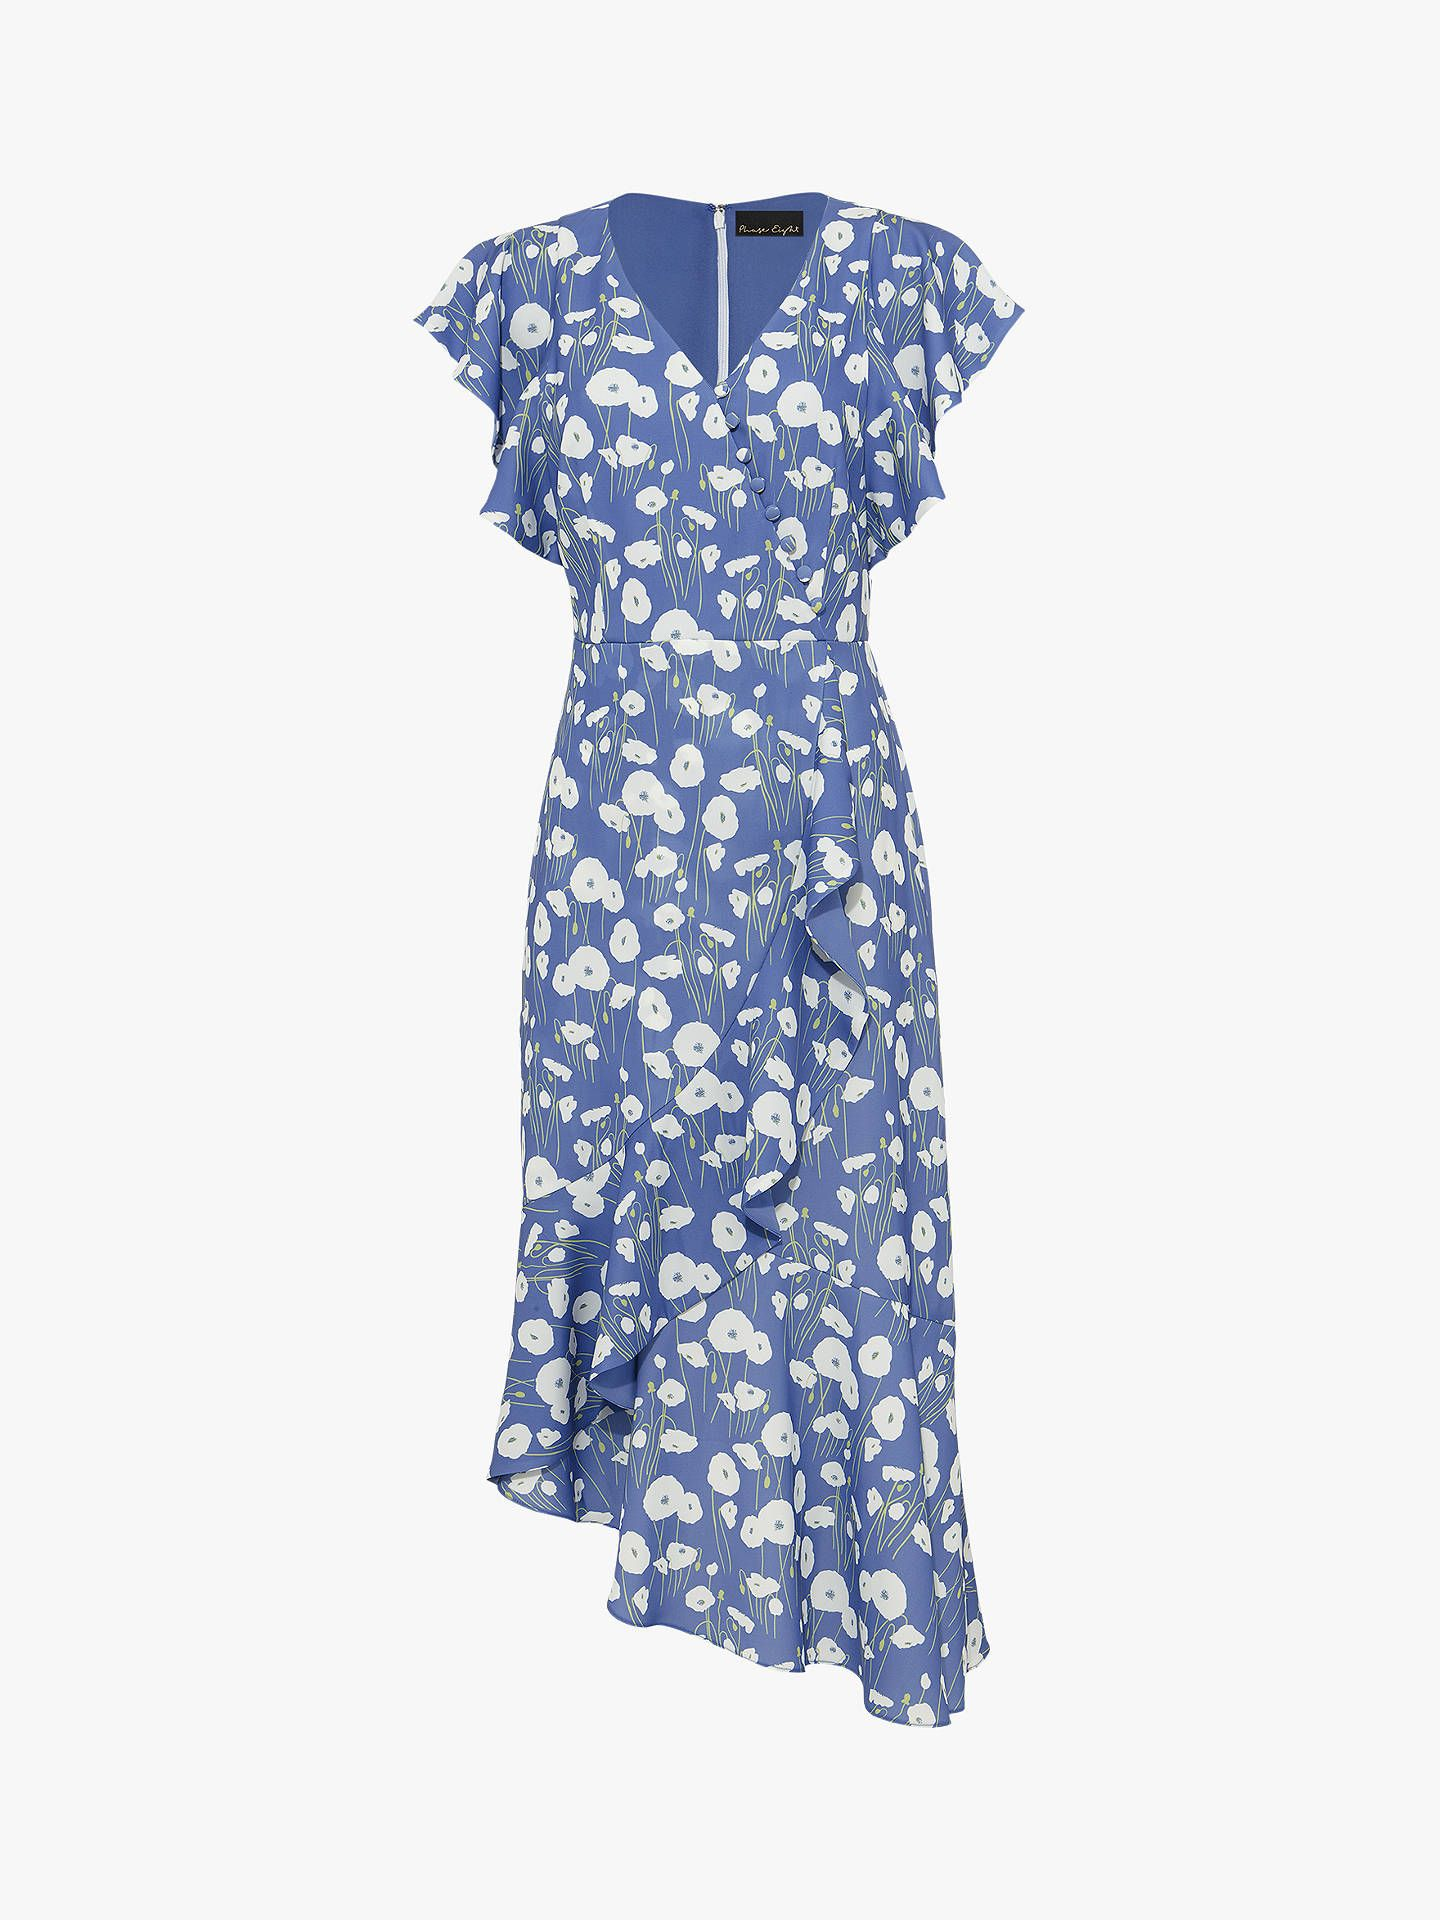 ad1ef52301 BuyPhase Eight Veronica Ditsy Floral Print Wrap Dress, Cornflower Blue, 6  Online at johnlewis.com (affiliate)